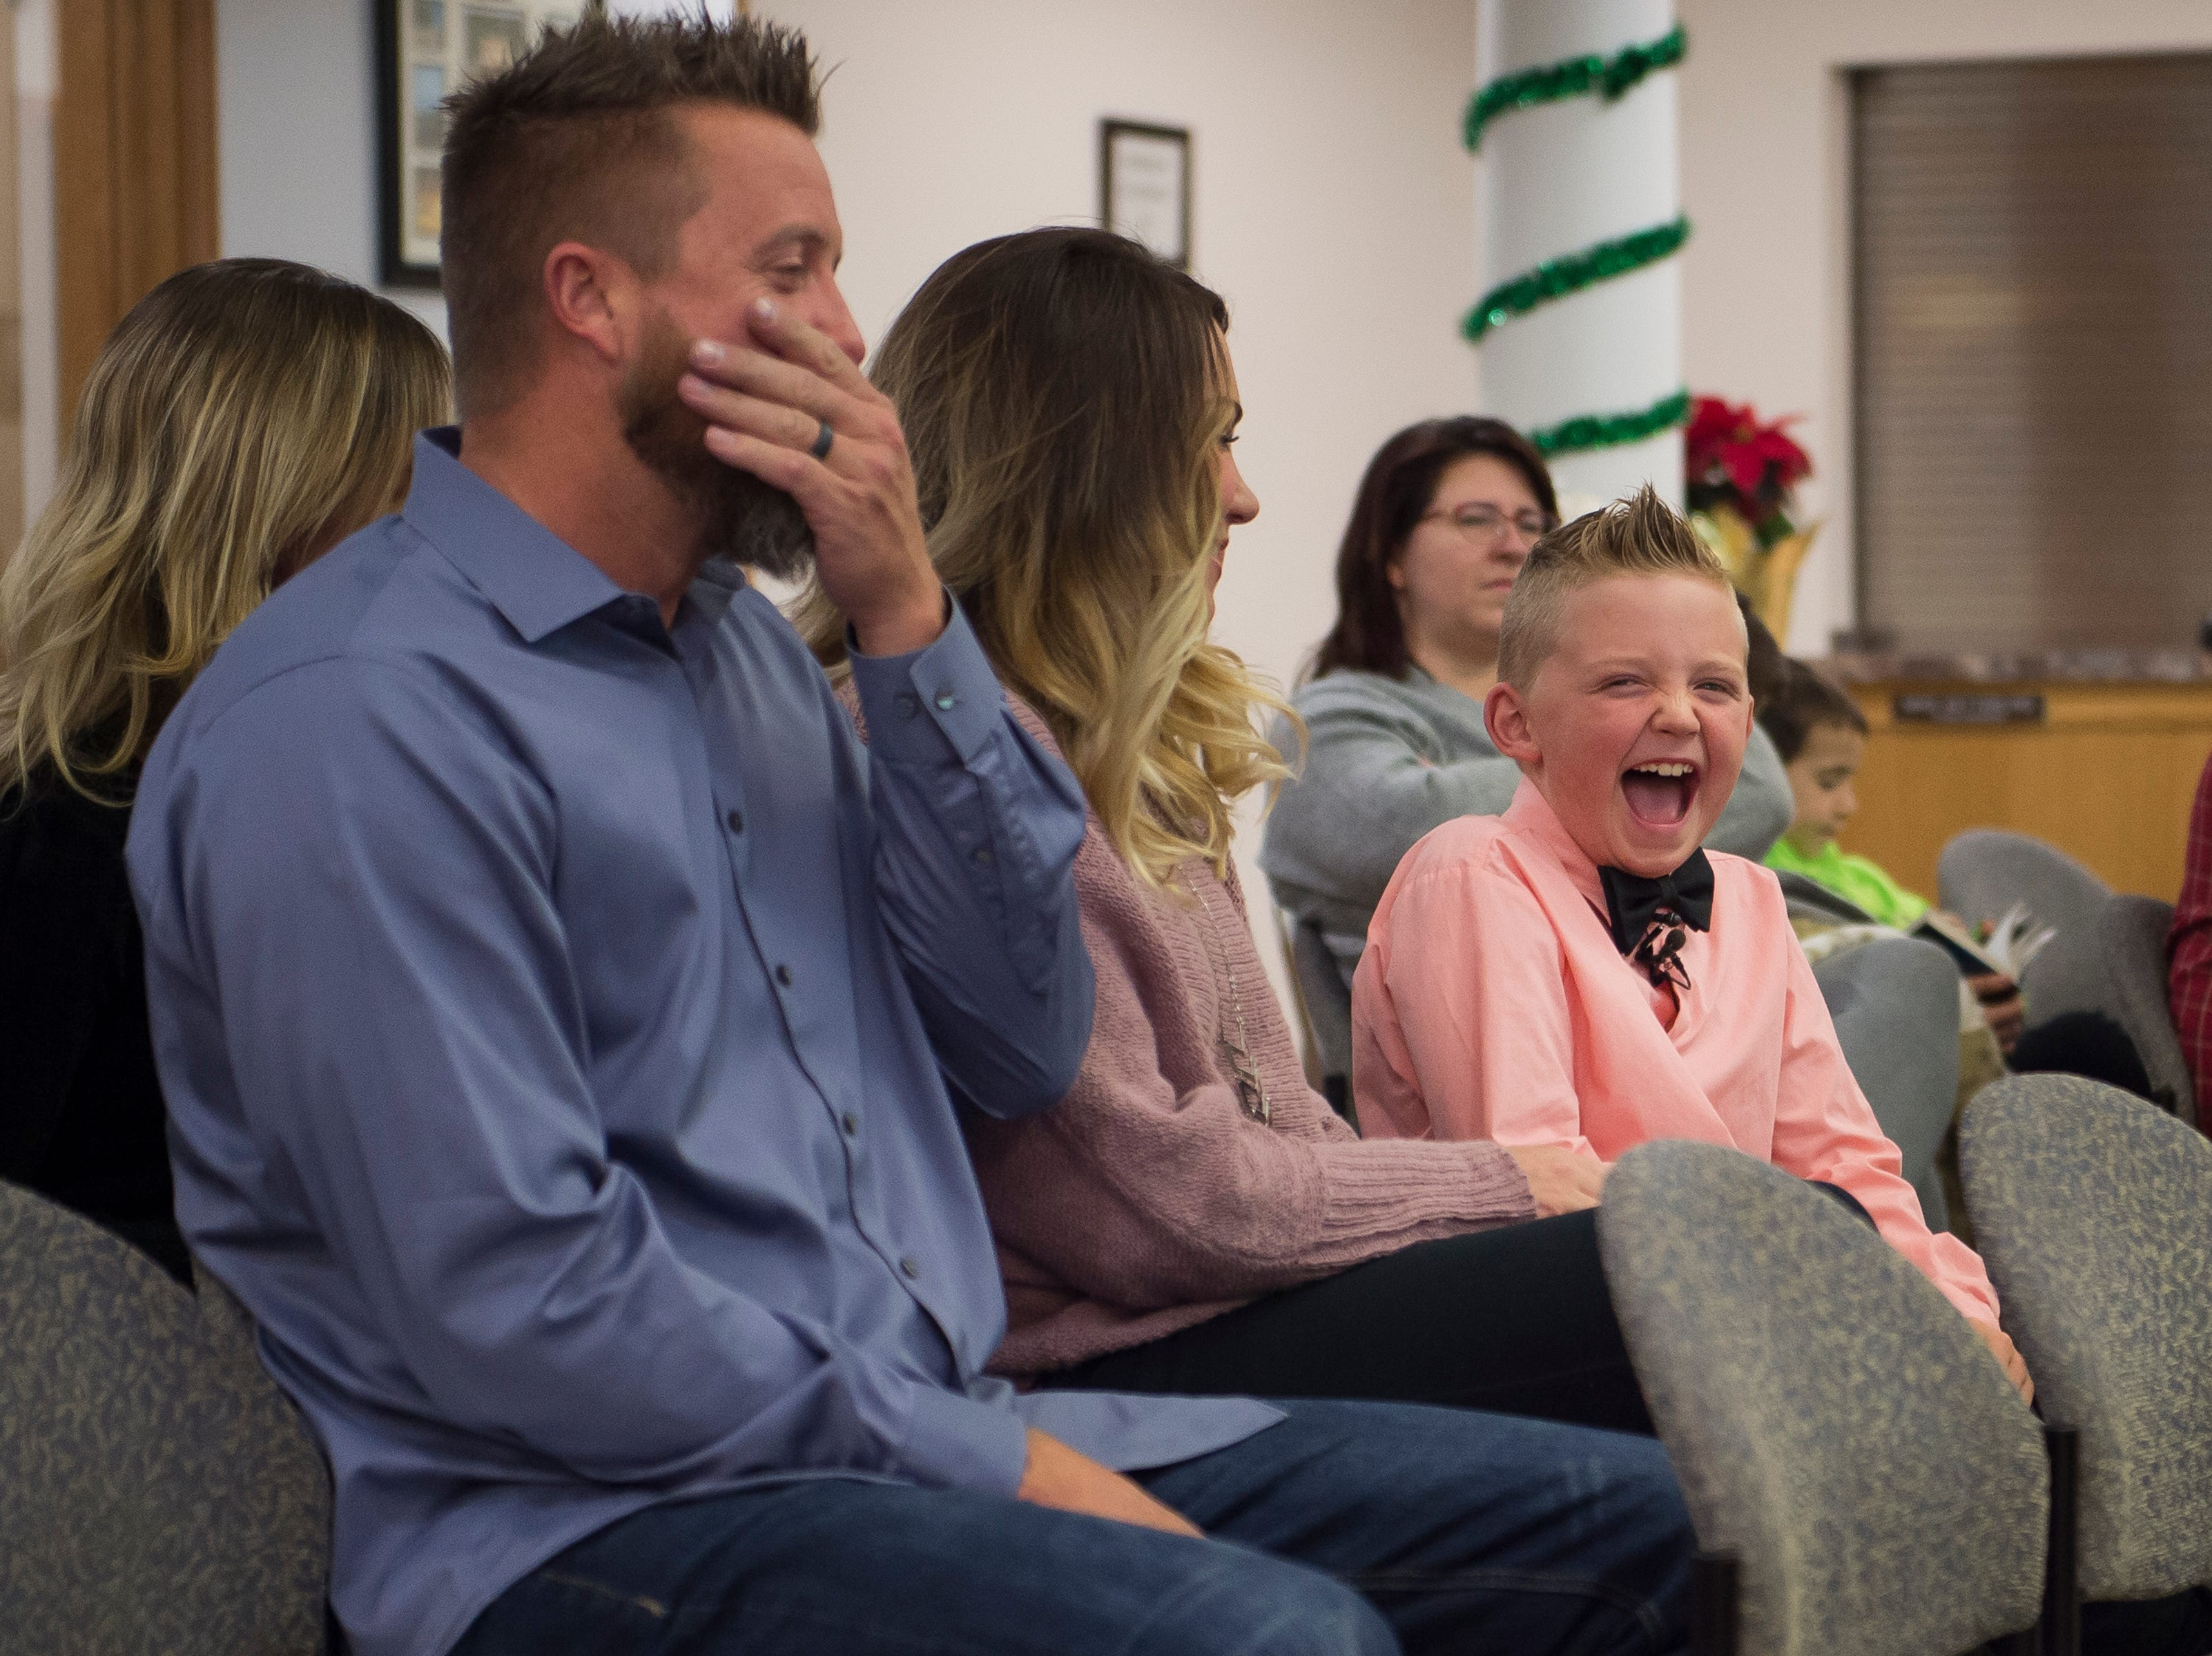 Range View Elementary School third grader Dane Best laughs with his parents Brooke and Derrick before a town board meeting where he presented his argument to change a law in Severance that bans snowball fights on Monday, Dec. 3, 2018, at the Town Hall in Severance, Colo. The board voted unanimously to approve the law change.